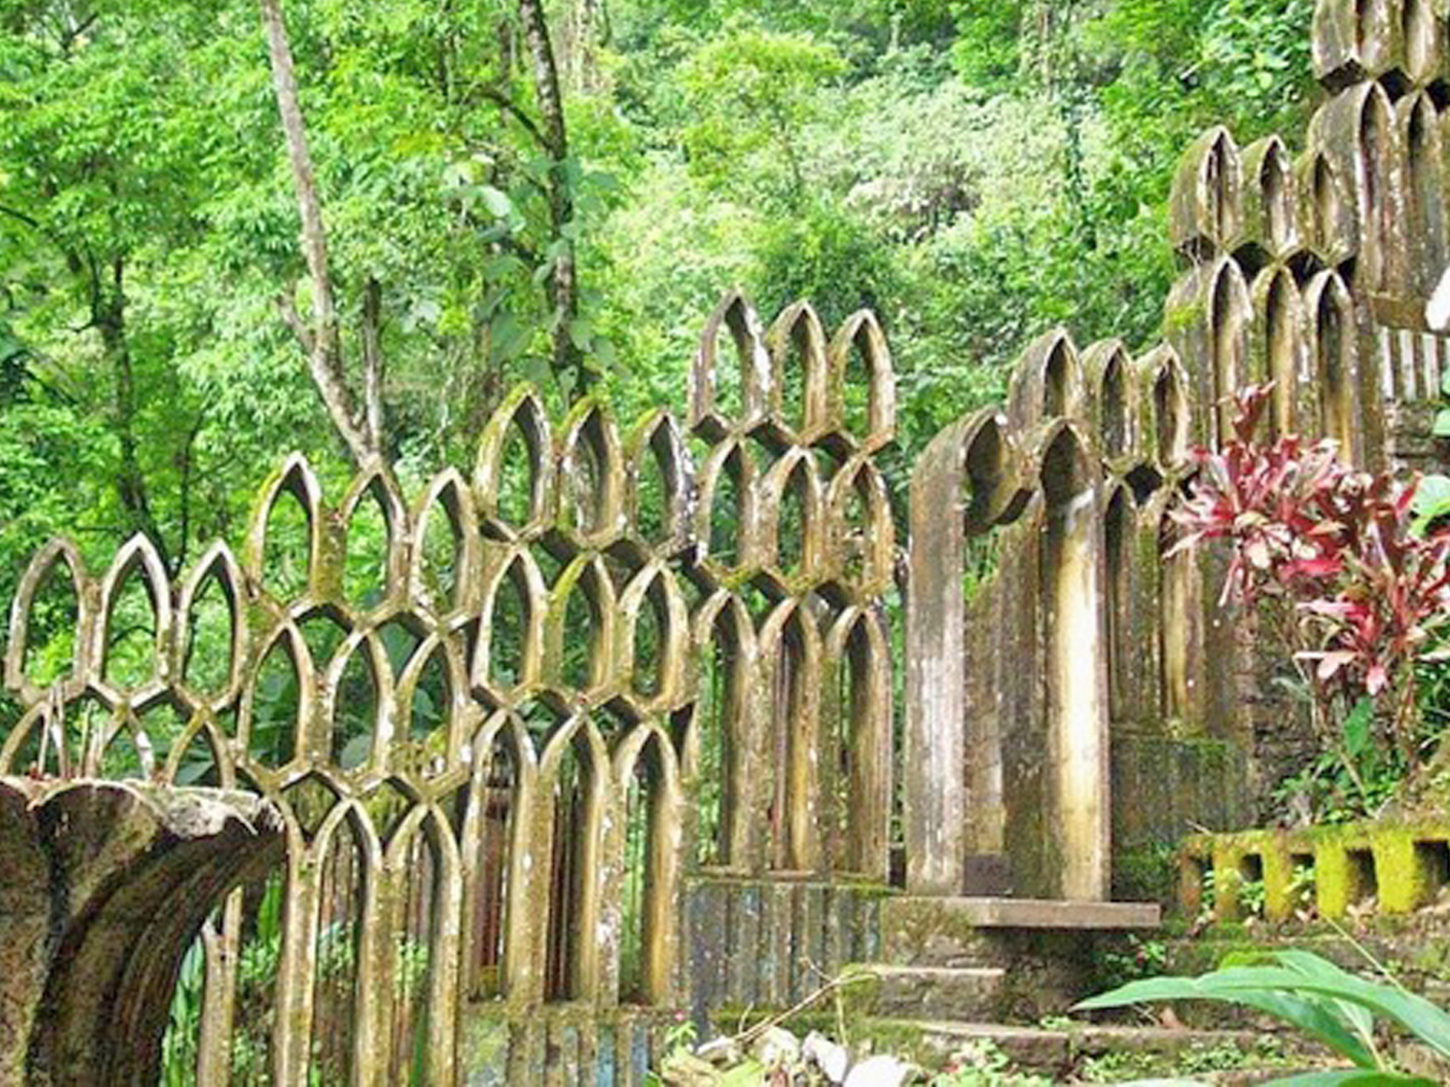 Xilitla: Surrealism at its best